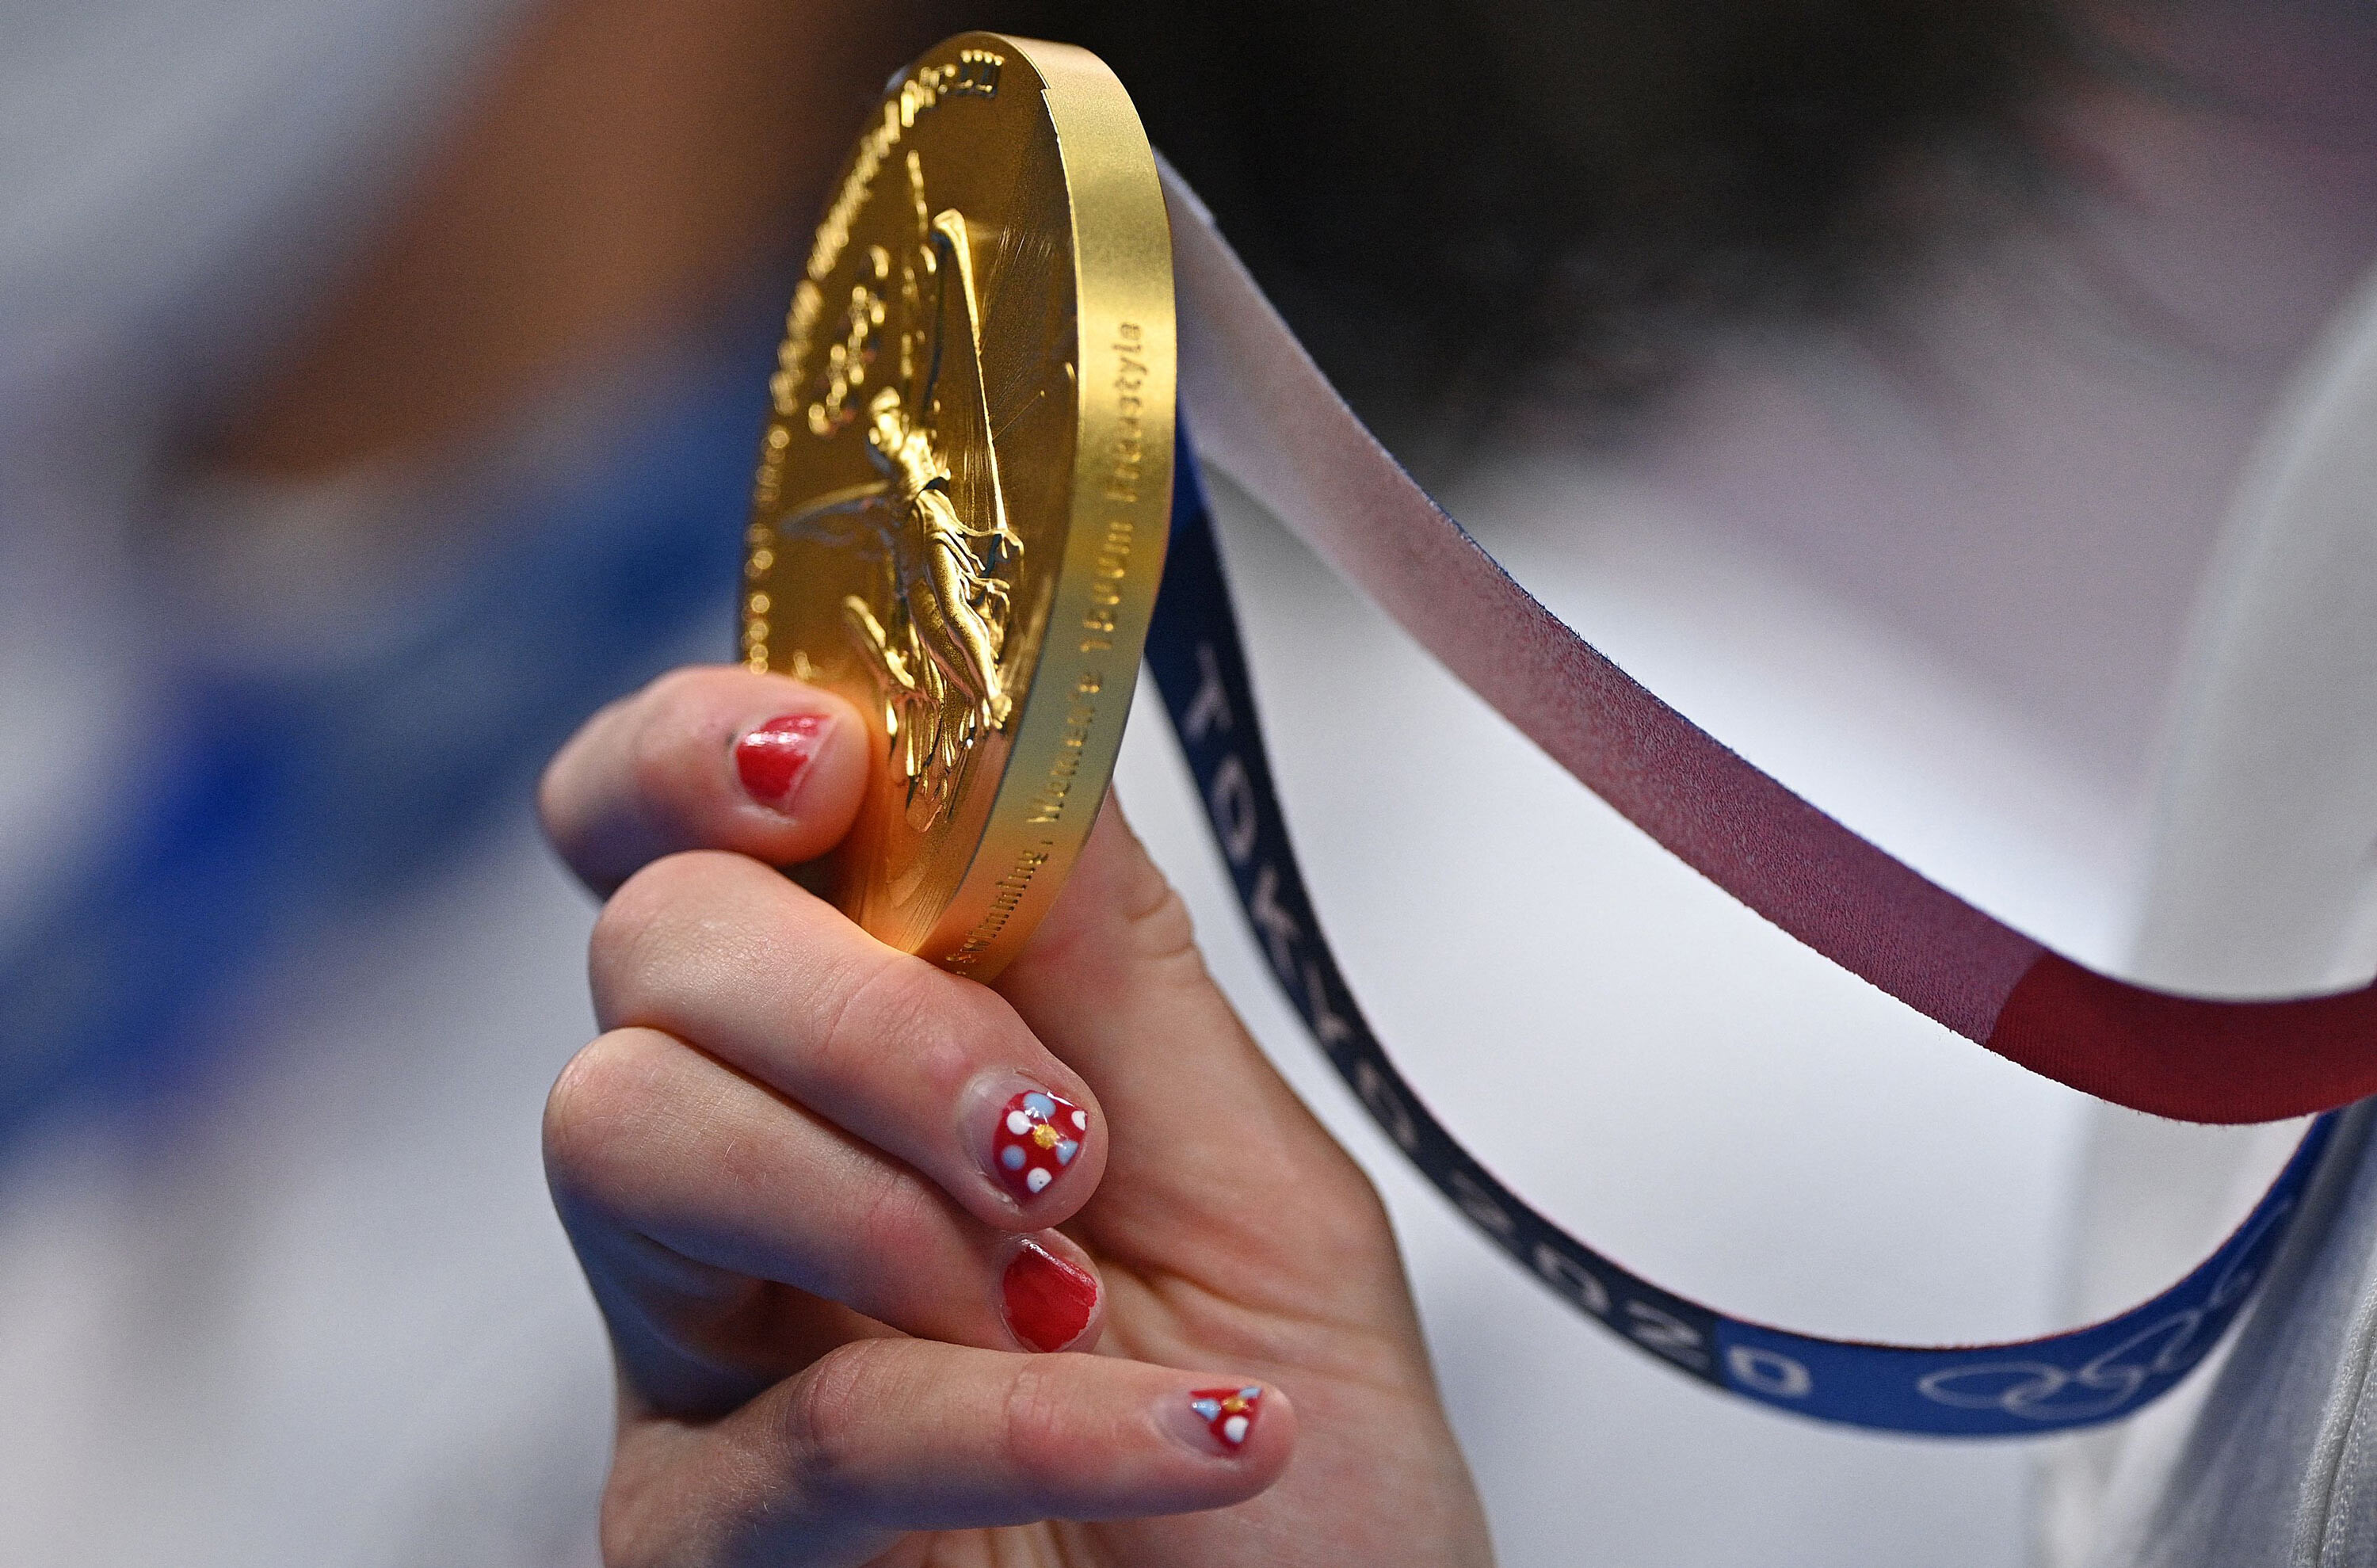 Here's who won gold medals at the Tokyo Olympics on Wednesday